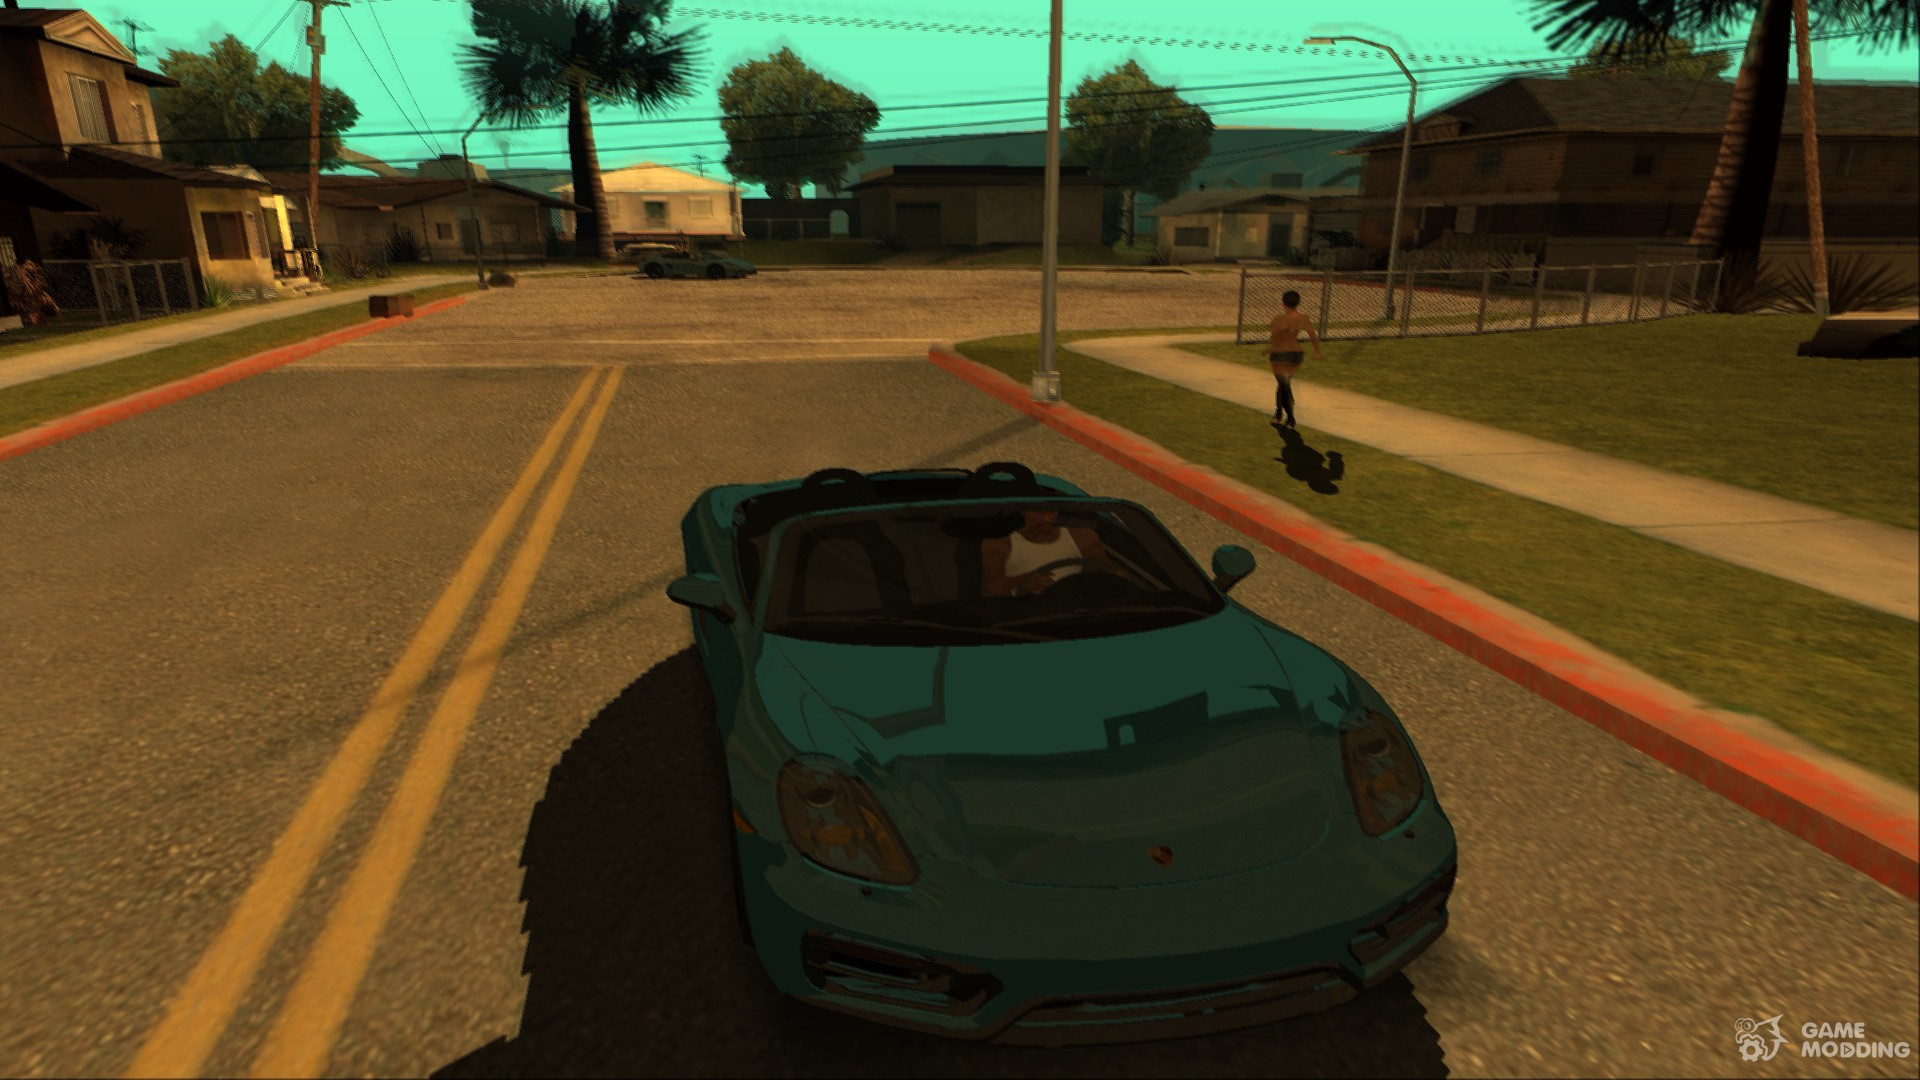 gta san andreas cars mods free download for pc